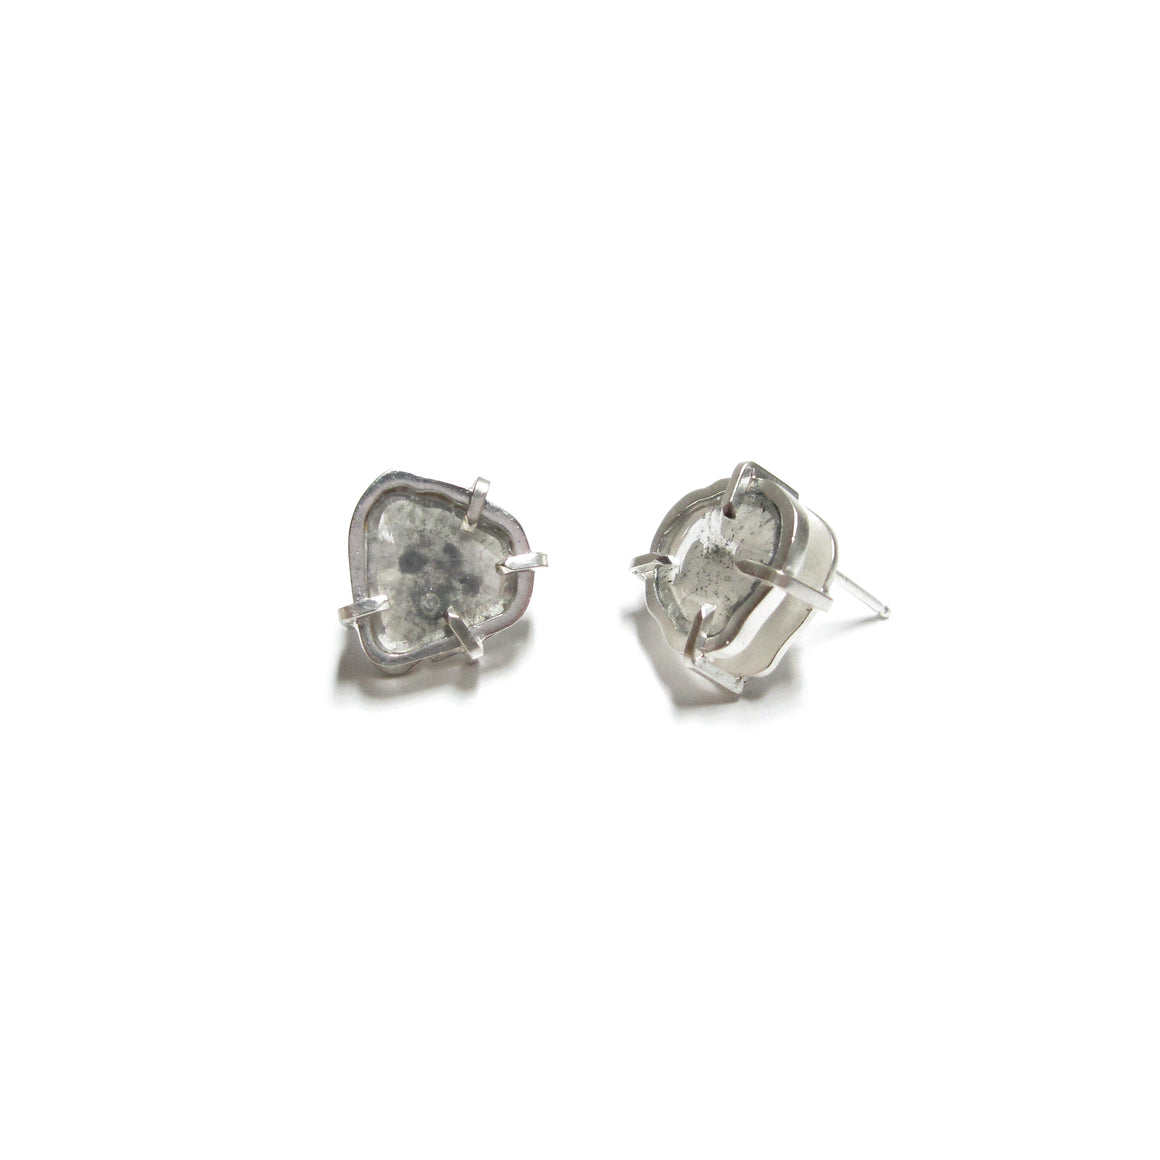 handmade, sterling silver, diamond slice, one of a kind earrings by Seth Papac